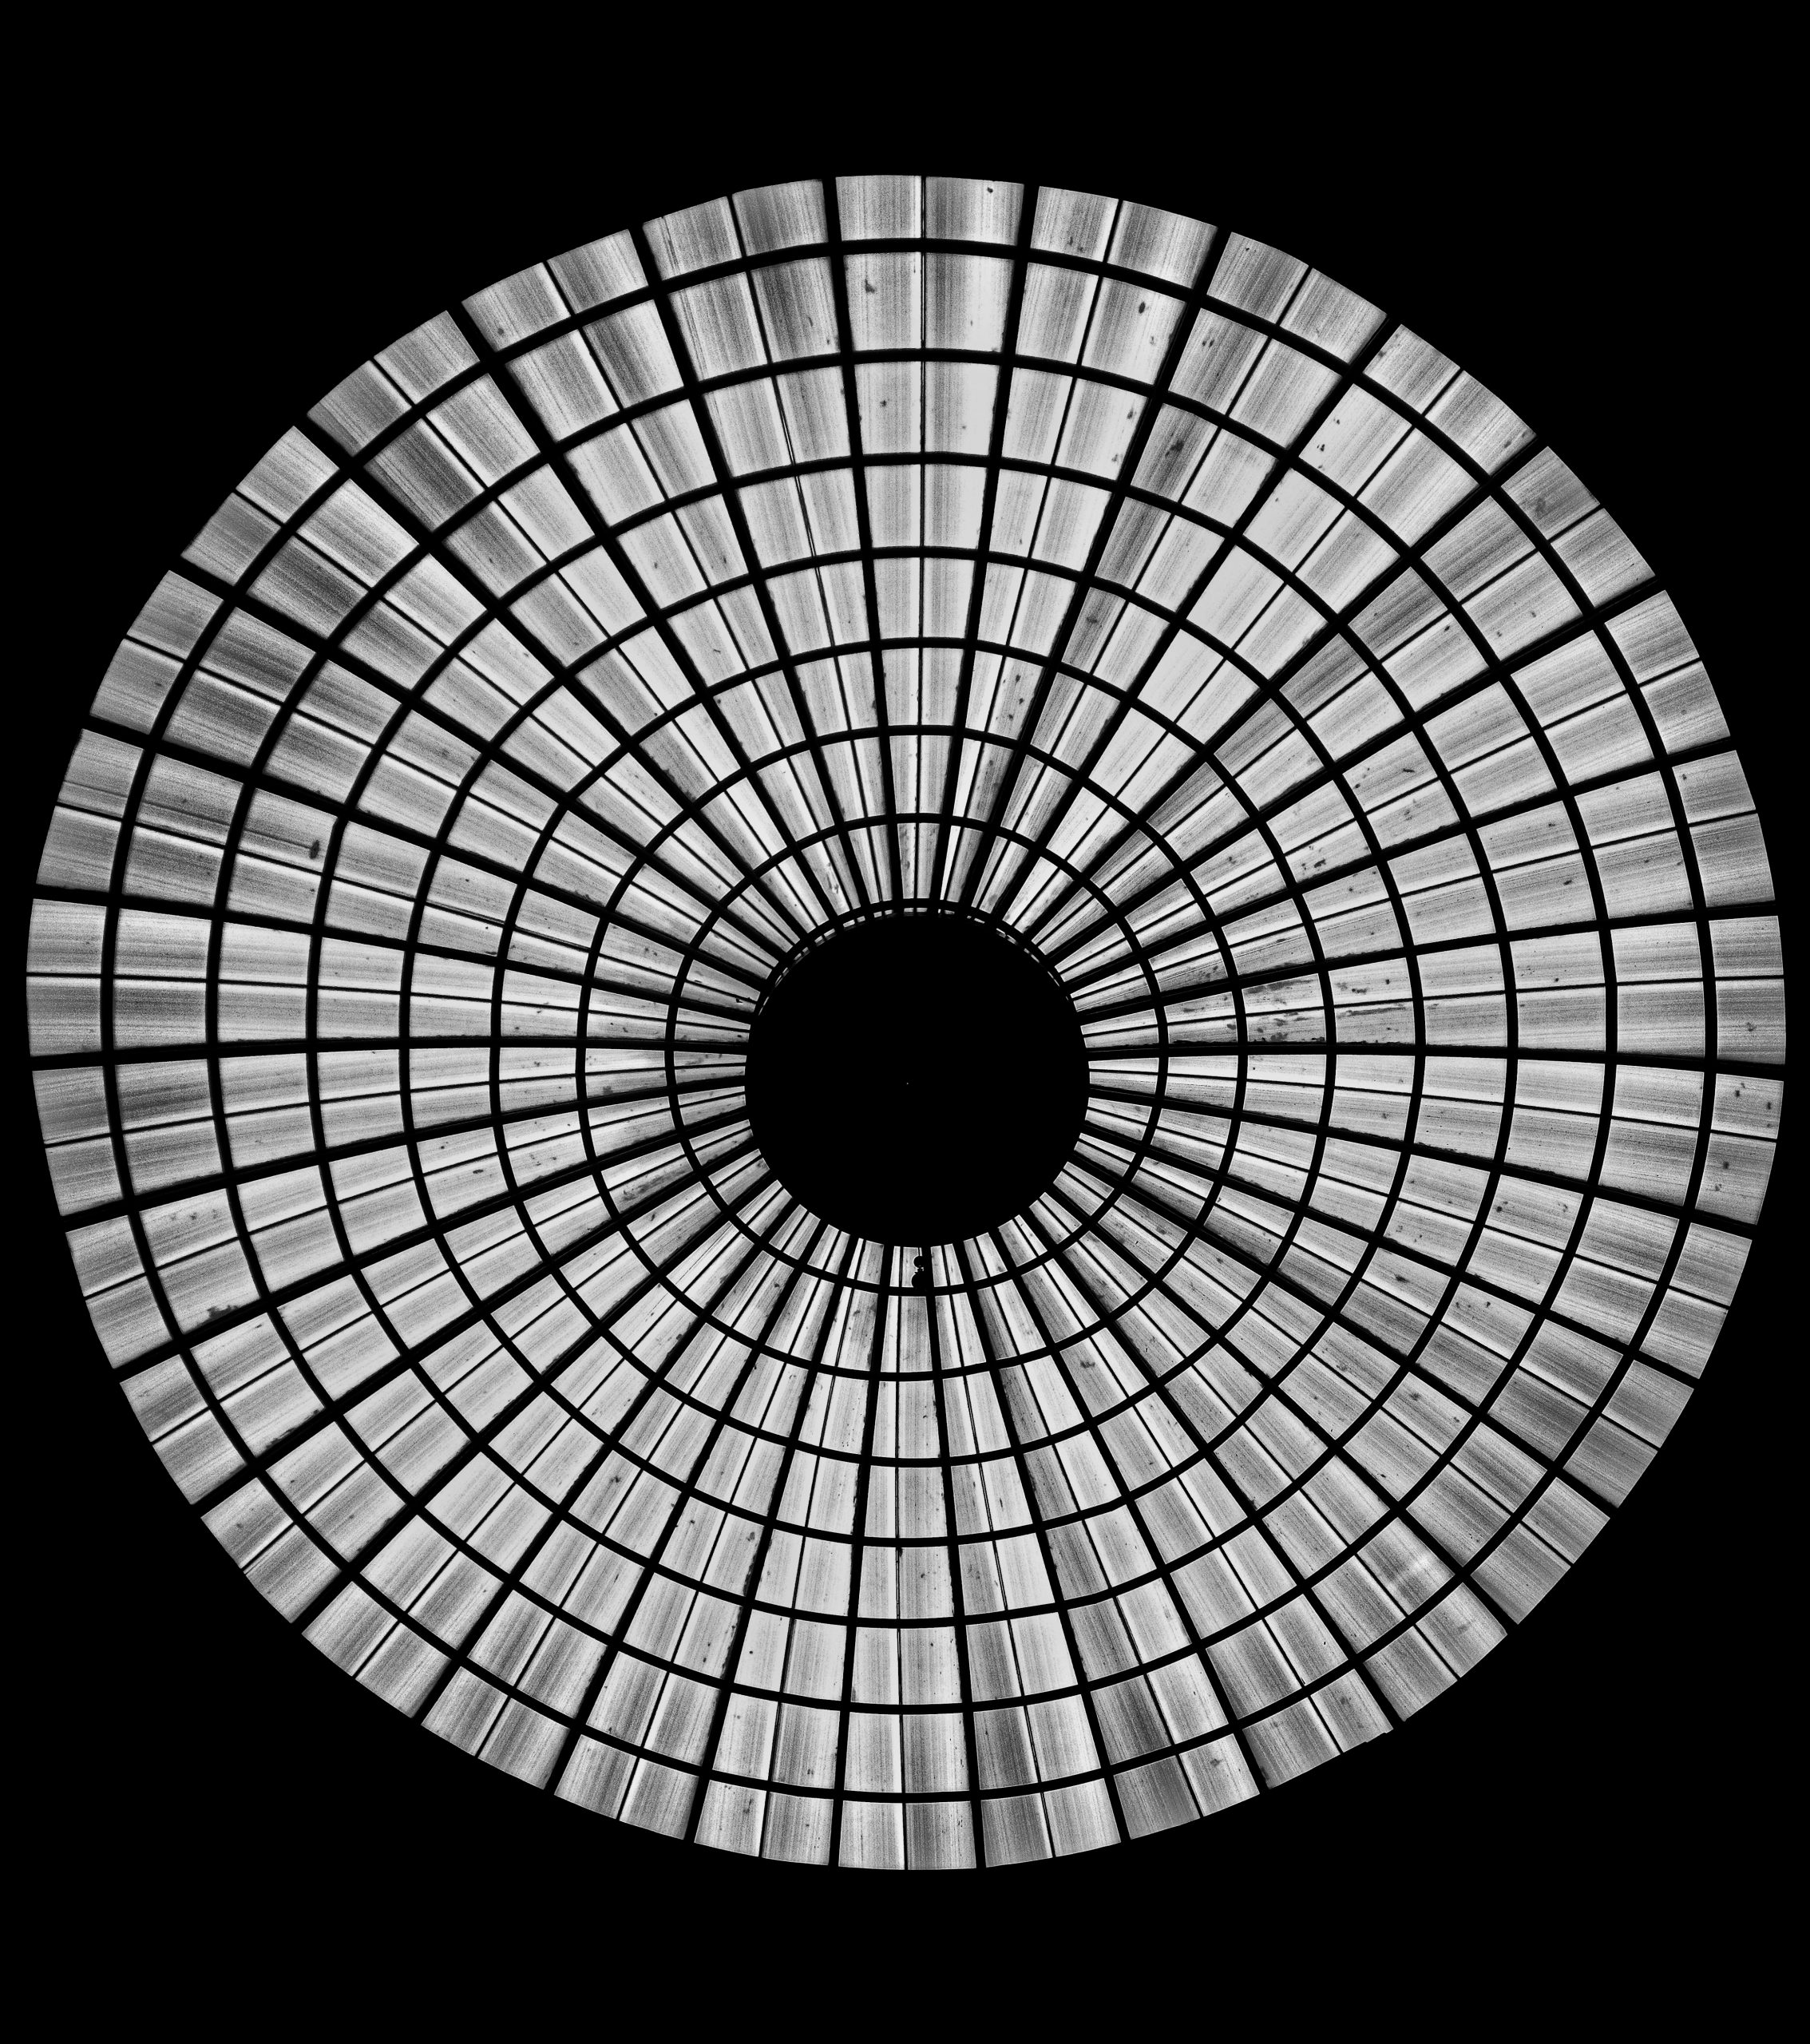 Circles with lines in black and white